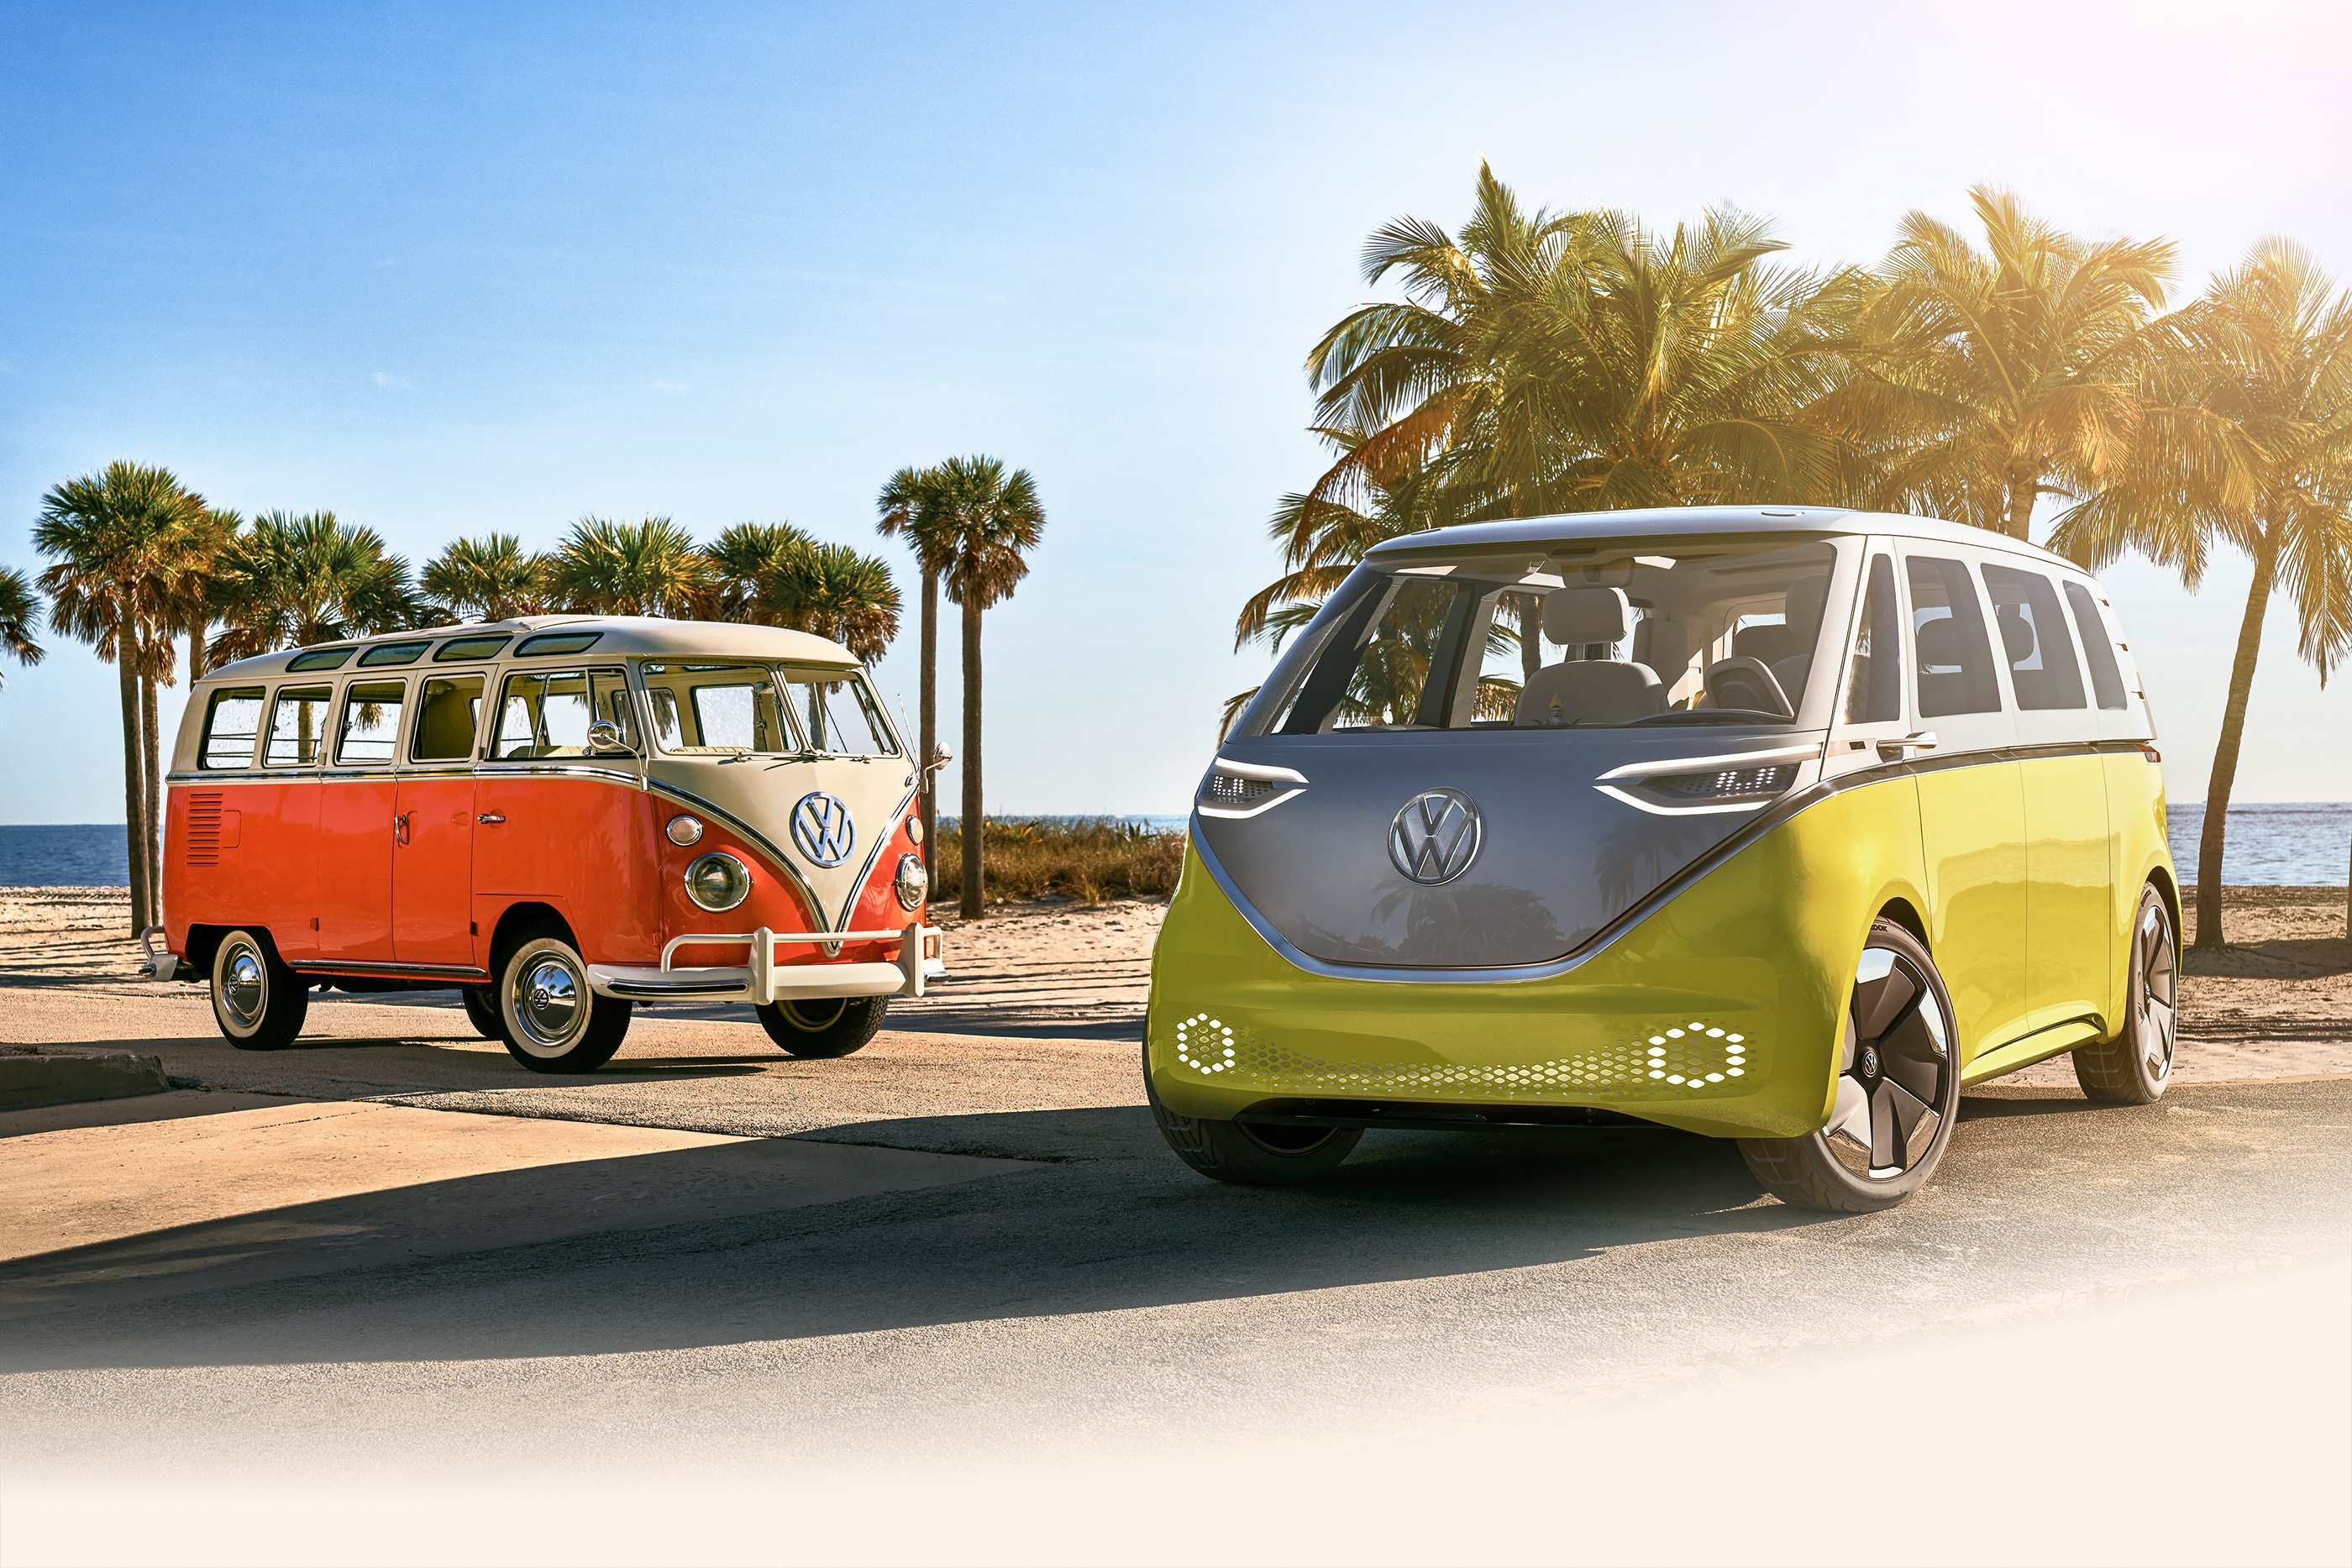 88 Best Review 2019 Volkswagen Bus Rumors for 2019 Volkswagen Bus